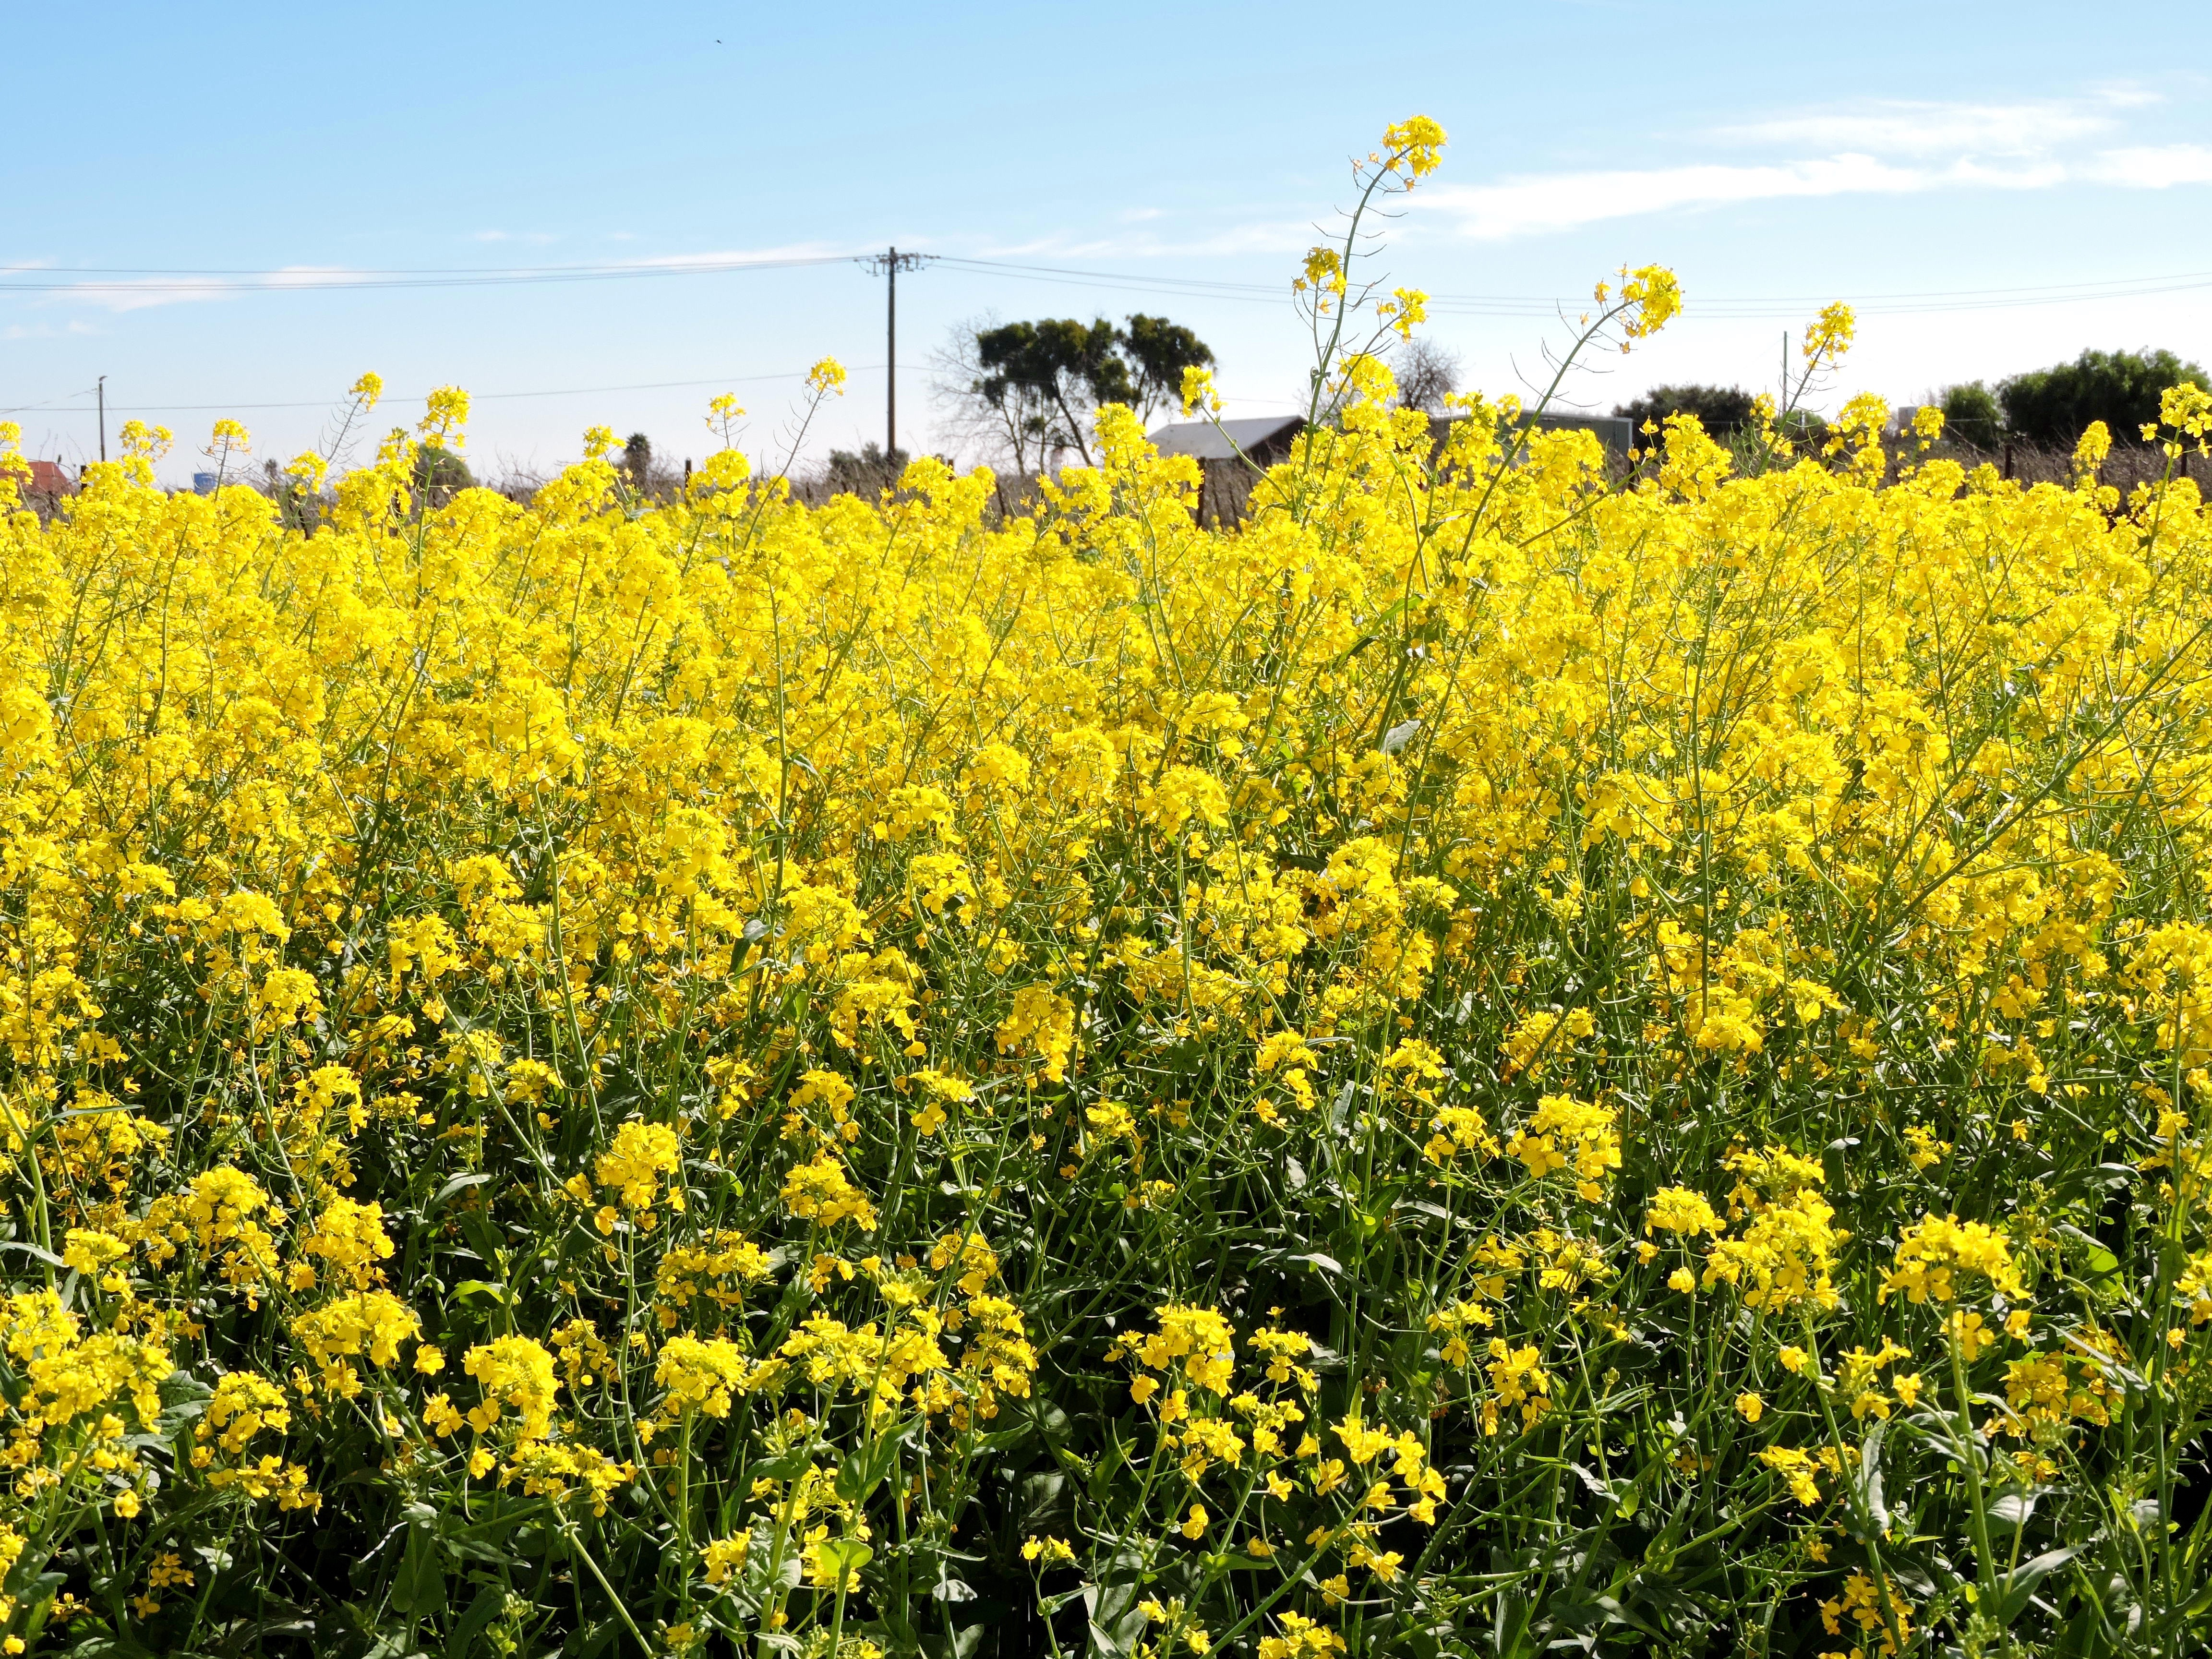 Suisun valleys mustard creates beautiful winter blanket visit vines may be quiet and still in the winter months but the mustard is in full bloom creating a vibrant and mesmerizing sea of yellow flowers throughout mightylinksfo